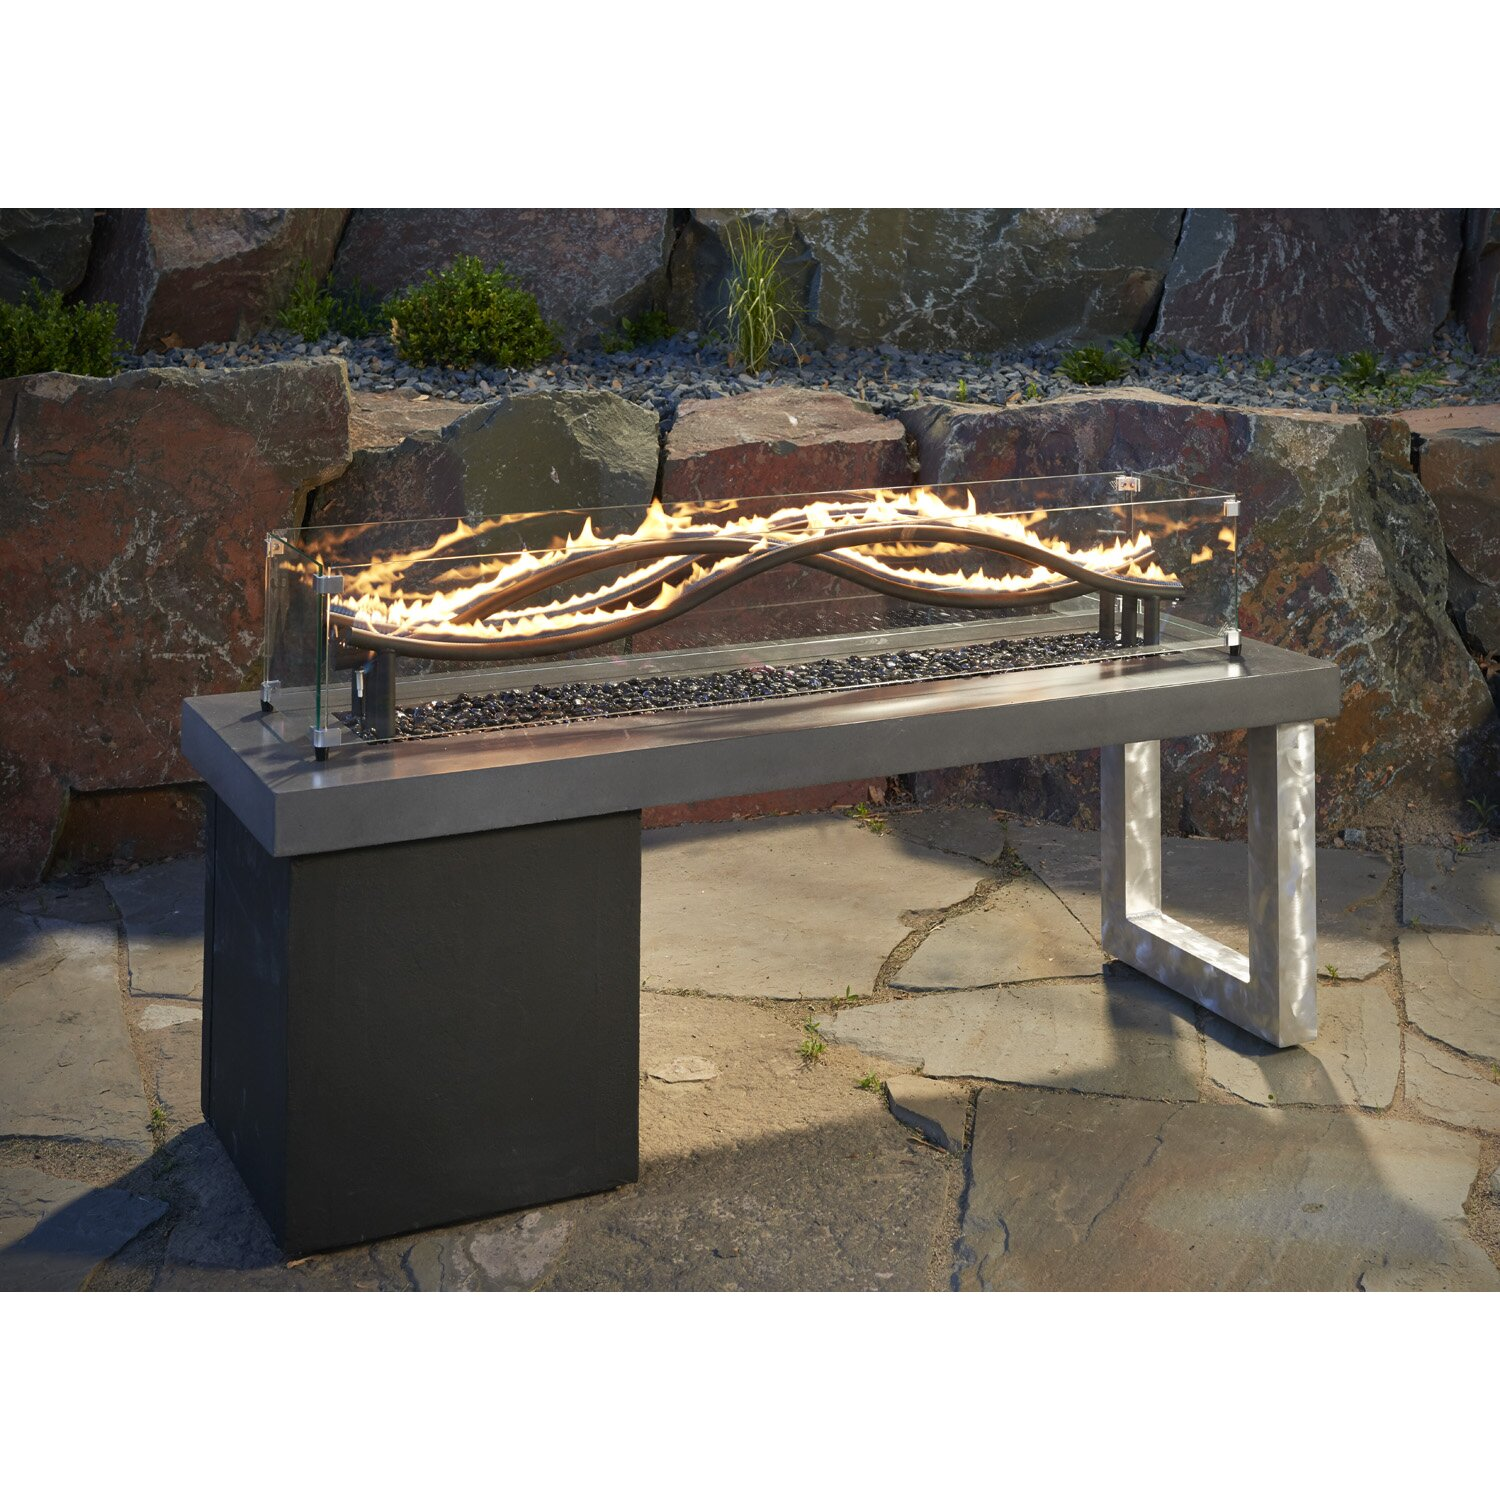 QUICK VIEW. Wave Propane Fire Pit - Natural Gas Outdoor Fireplaces & Fire Pits You'll Love Wayfair